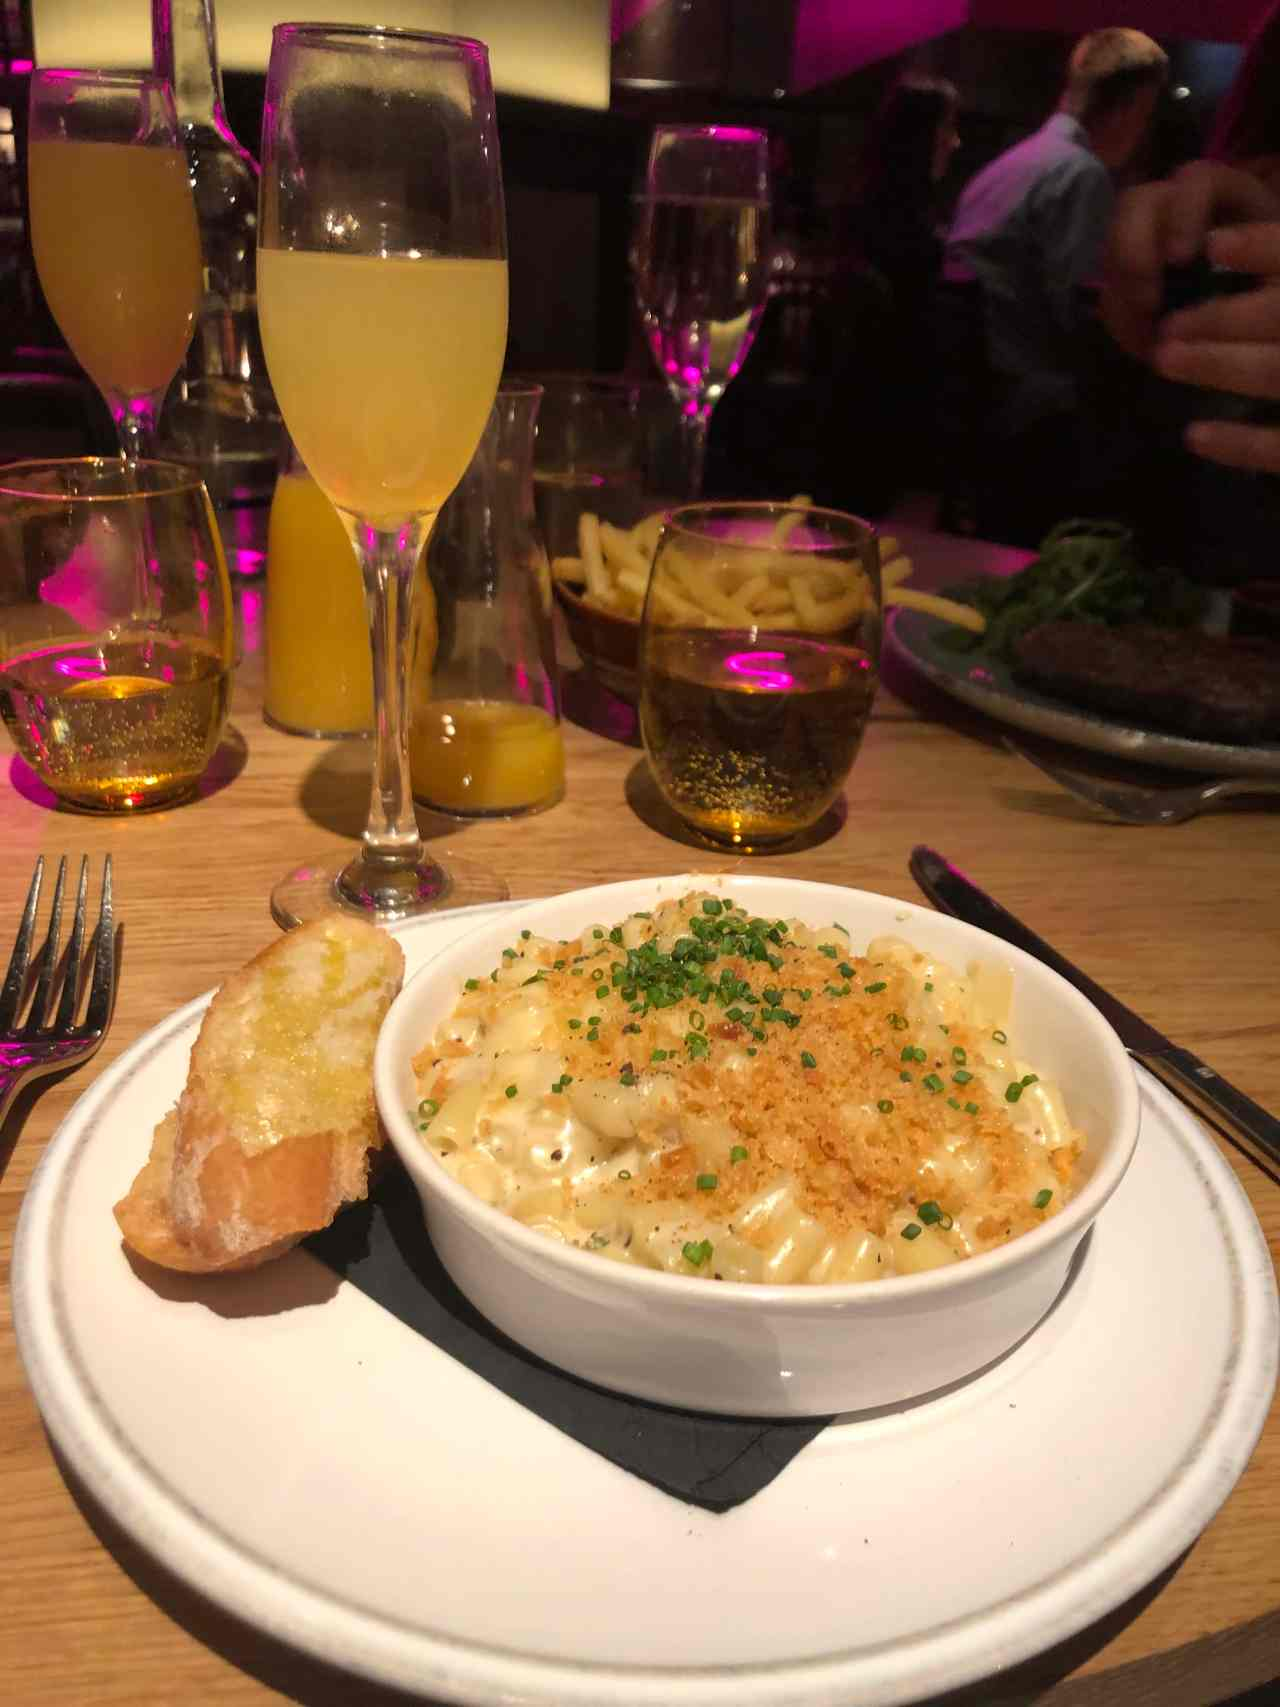 Mac and cheese with truffle breadcrumbs